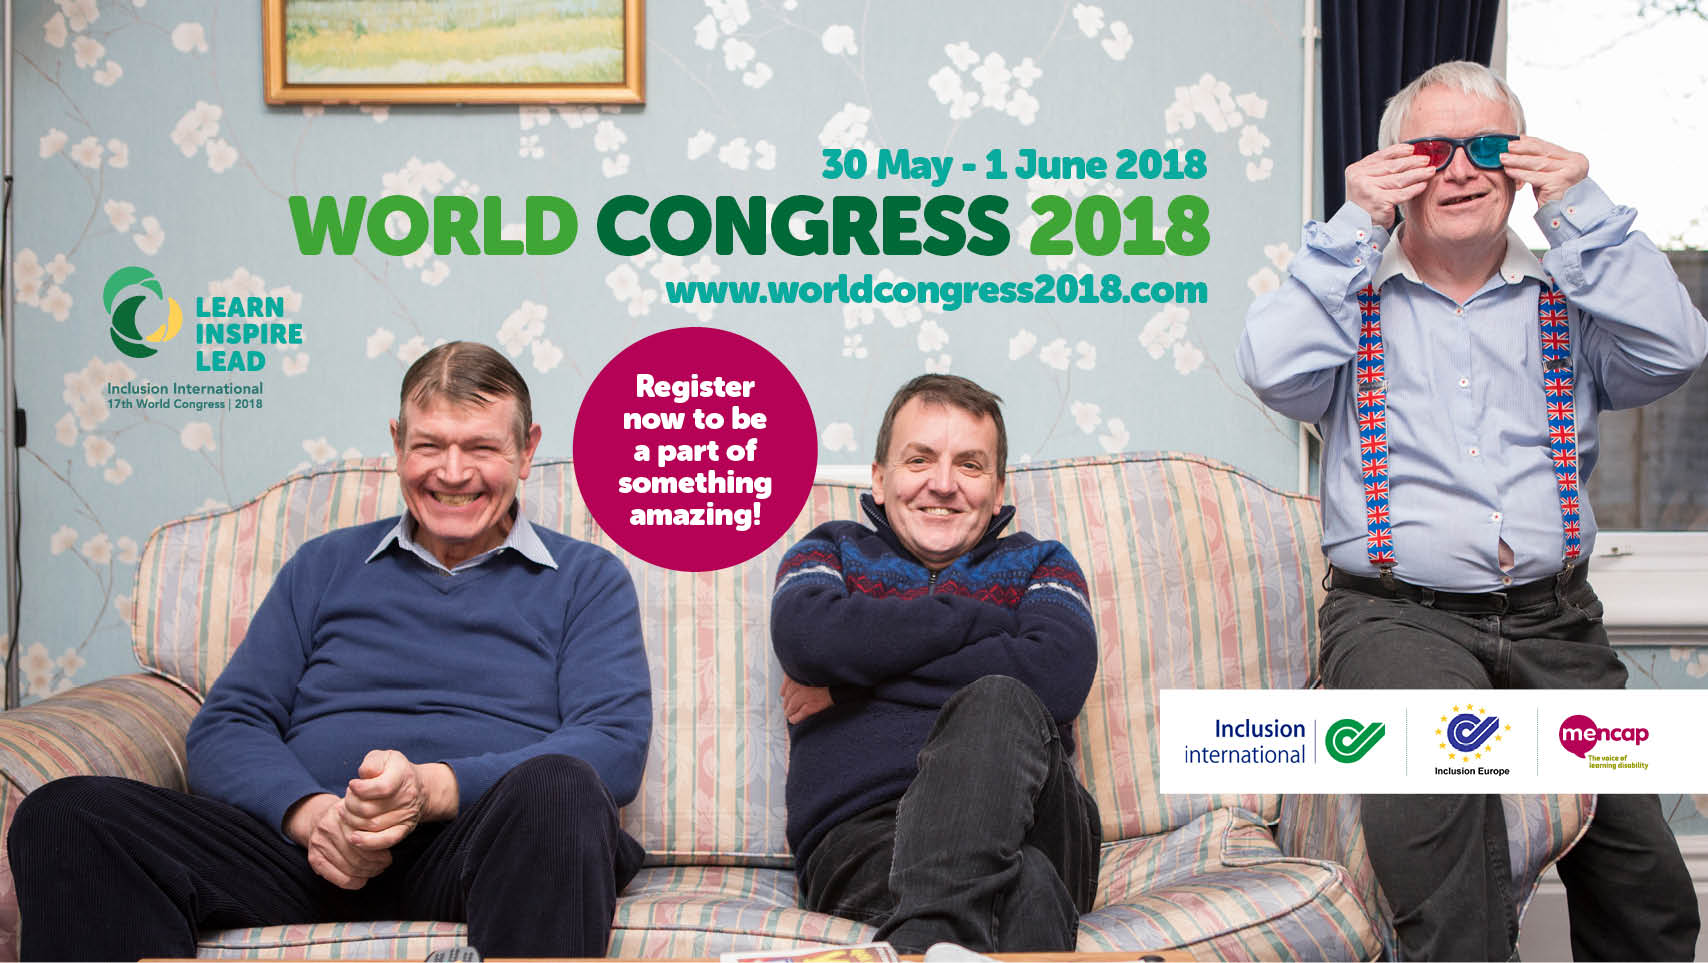 Learn, Inspire, Lead: Programme of World Congress 2018 published